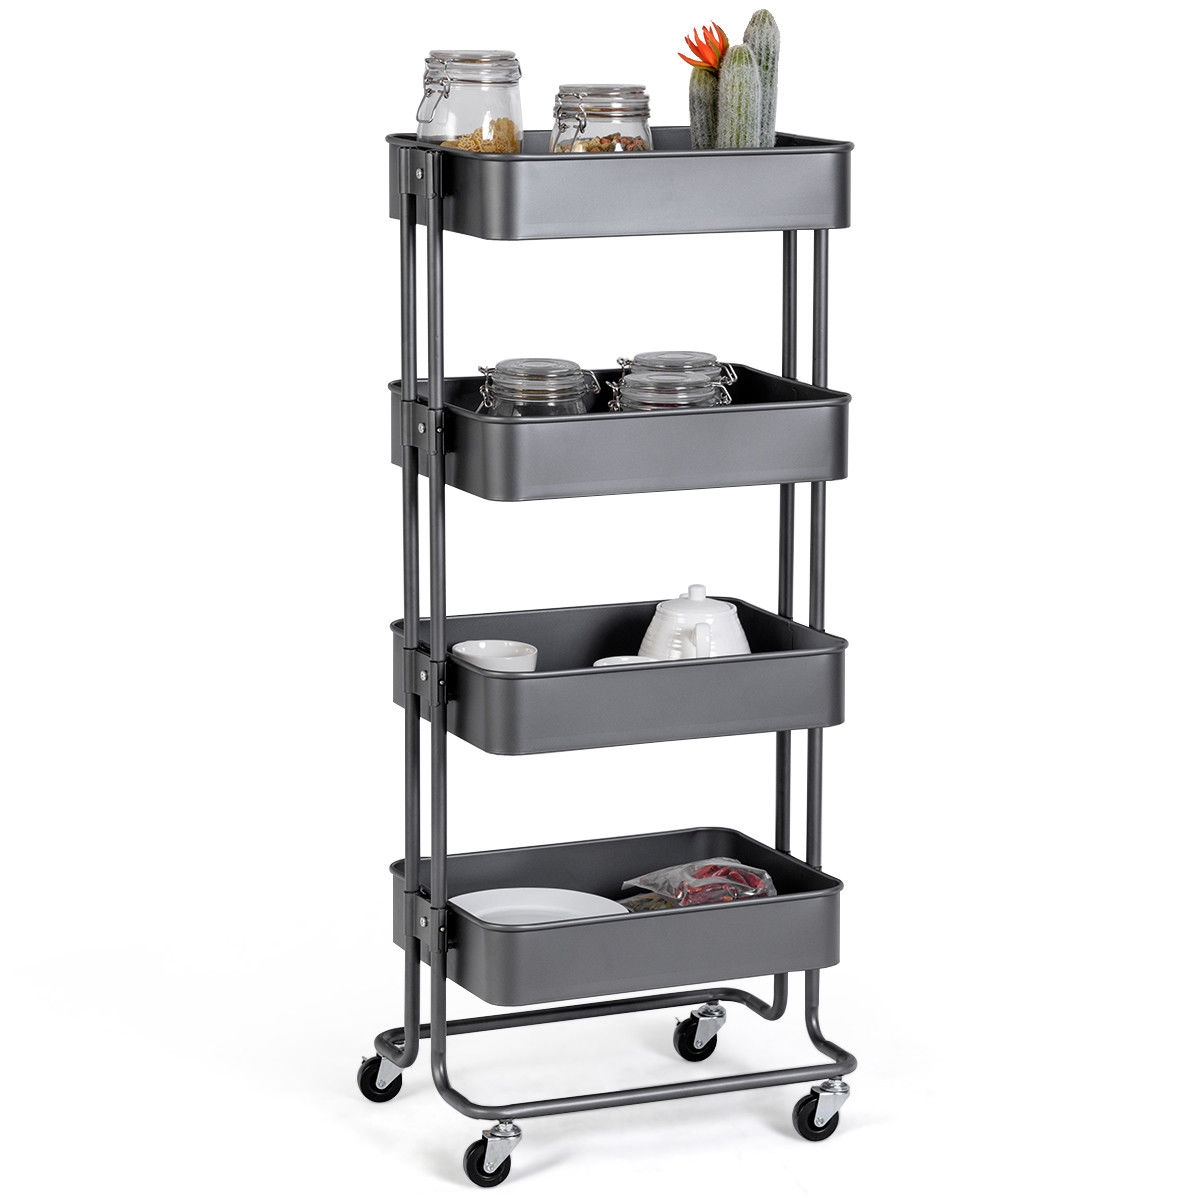 4 Tier Metal Rolling Utility Storage Cart